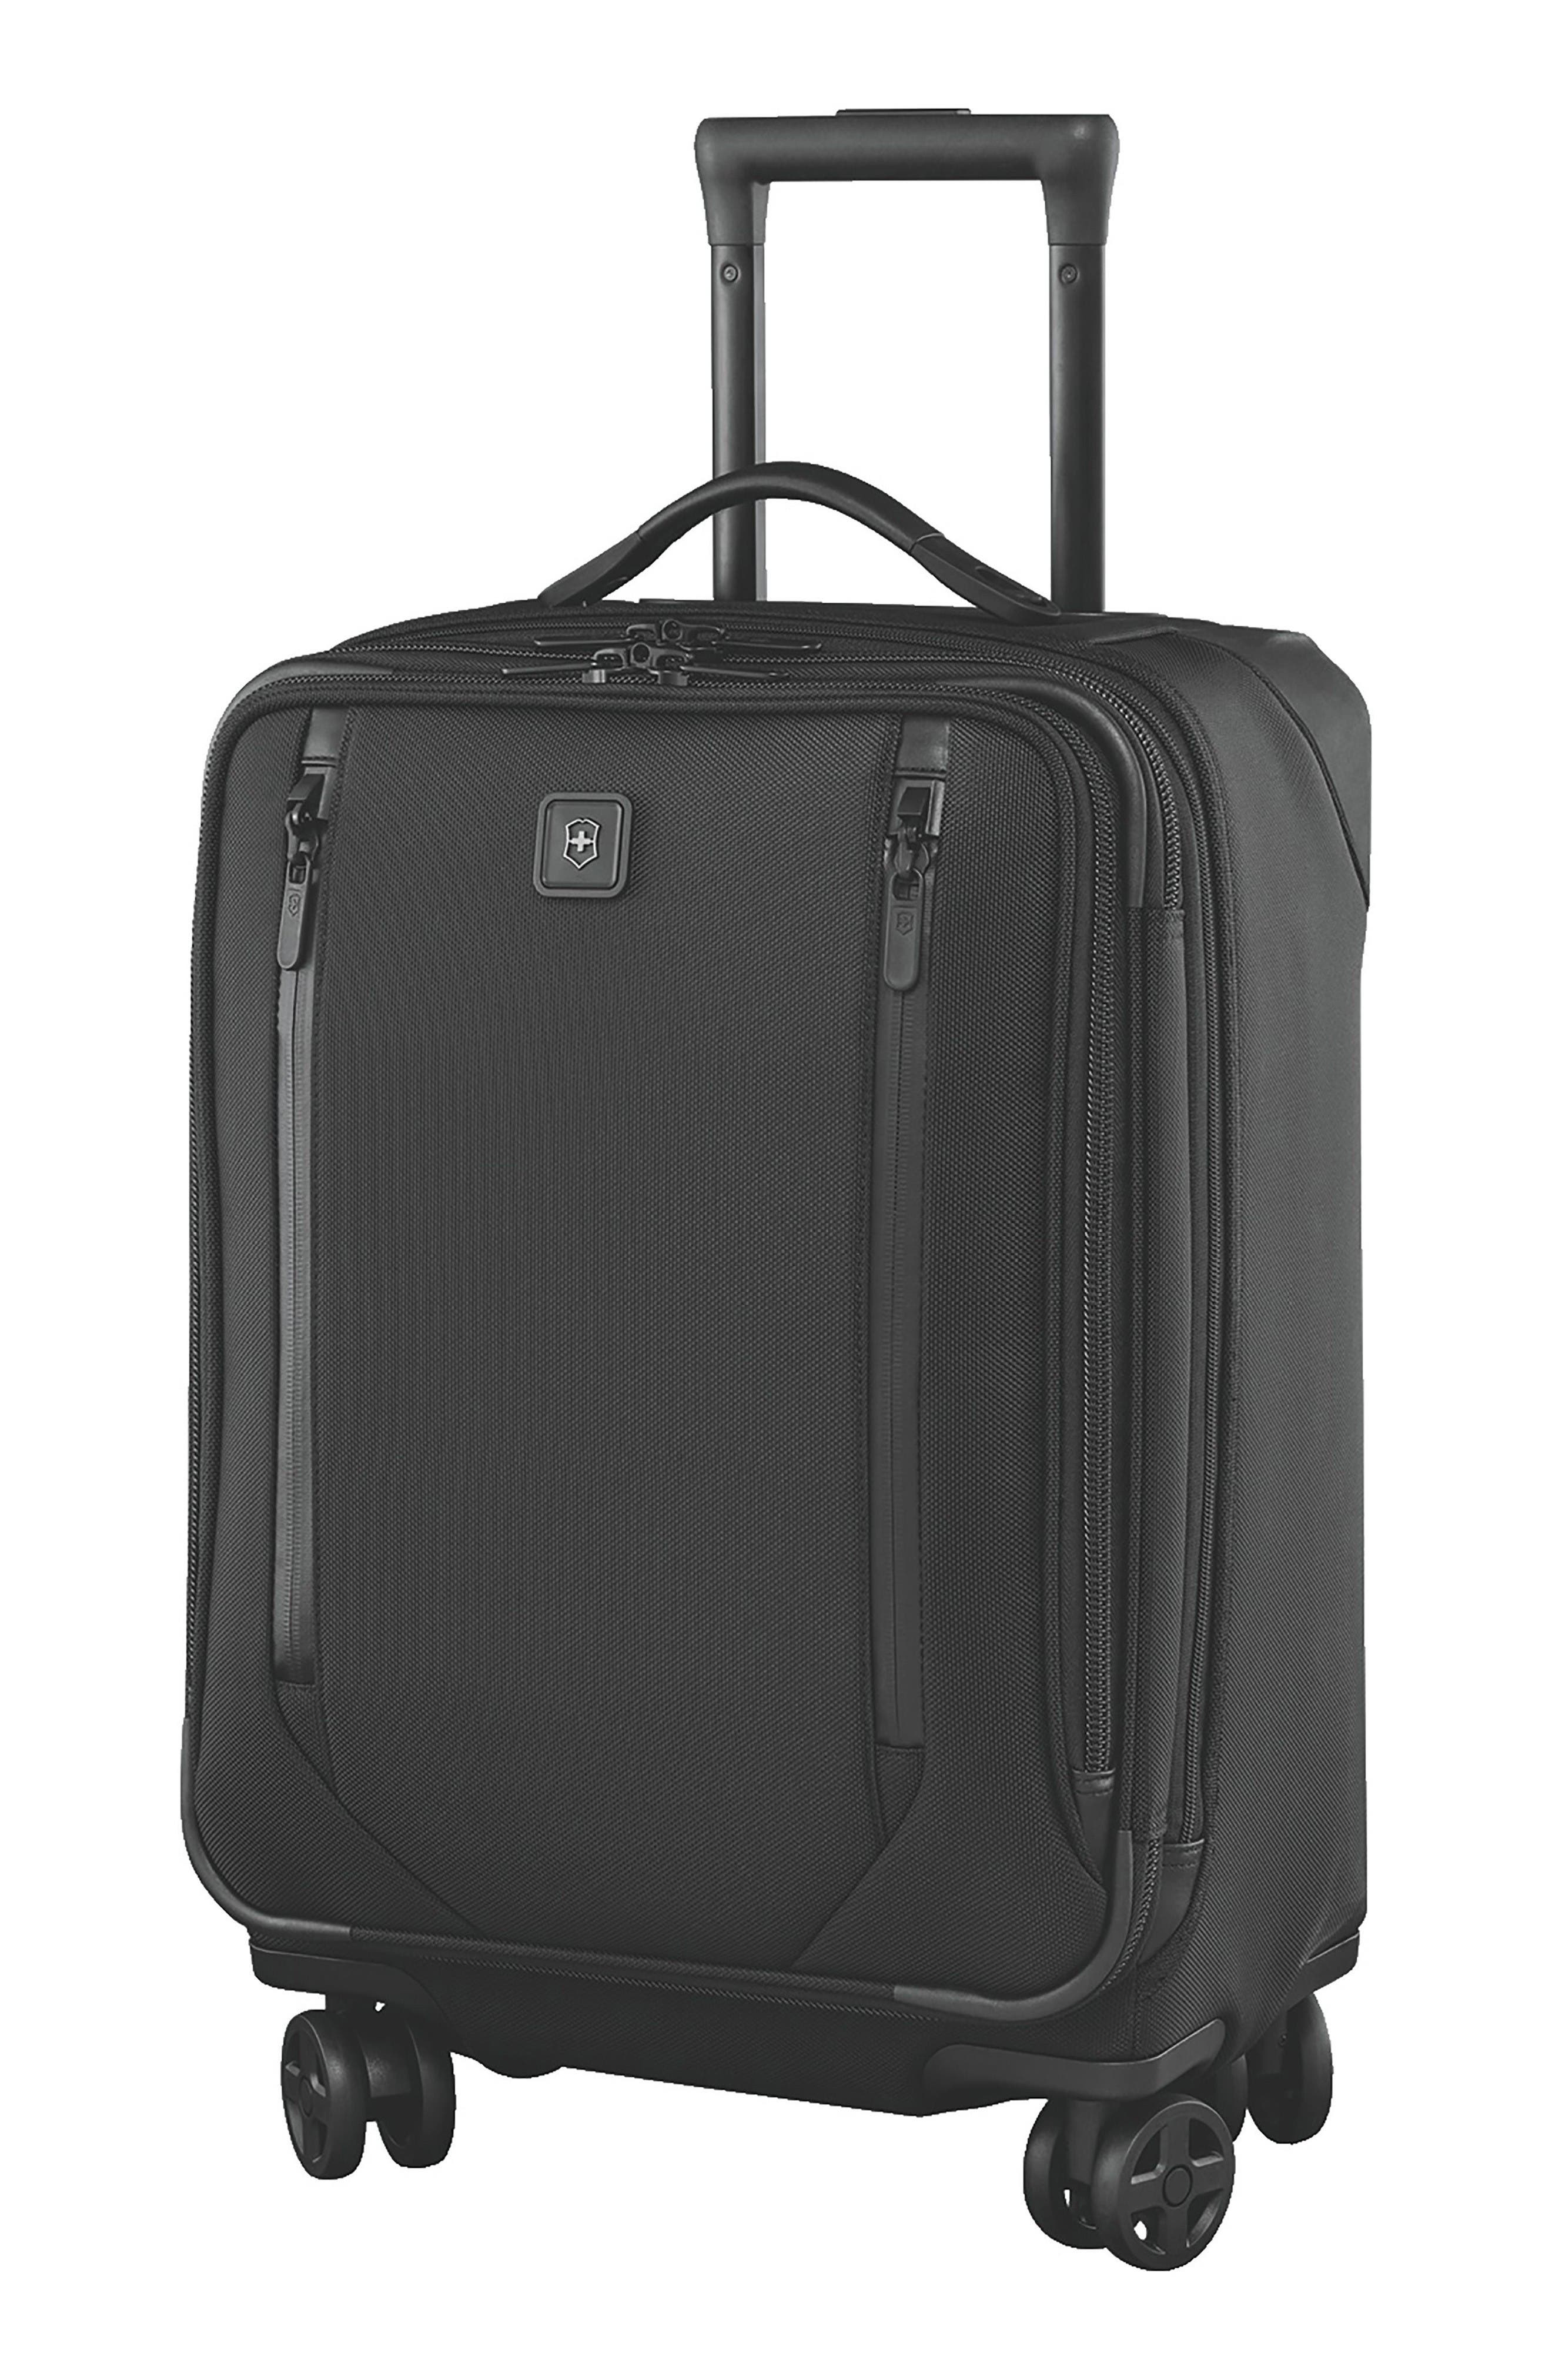 Alternate Image 1 Selected - Victorinox Swiss Army® Lexicon 2.0 24-Inch Wheeled Suitcase